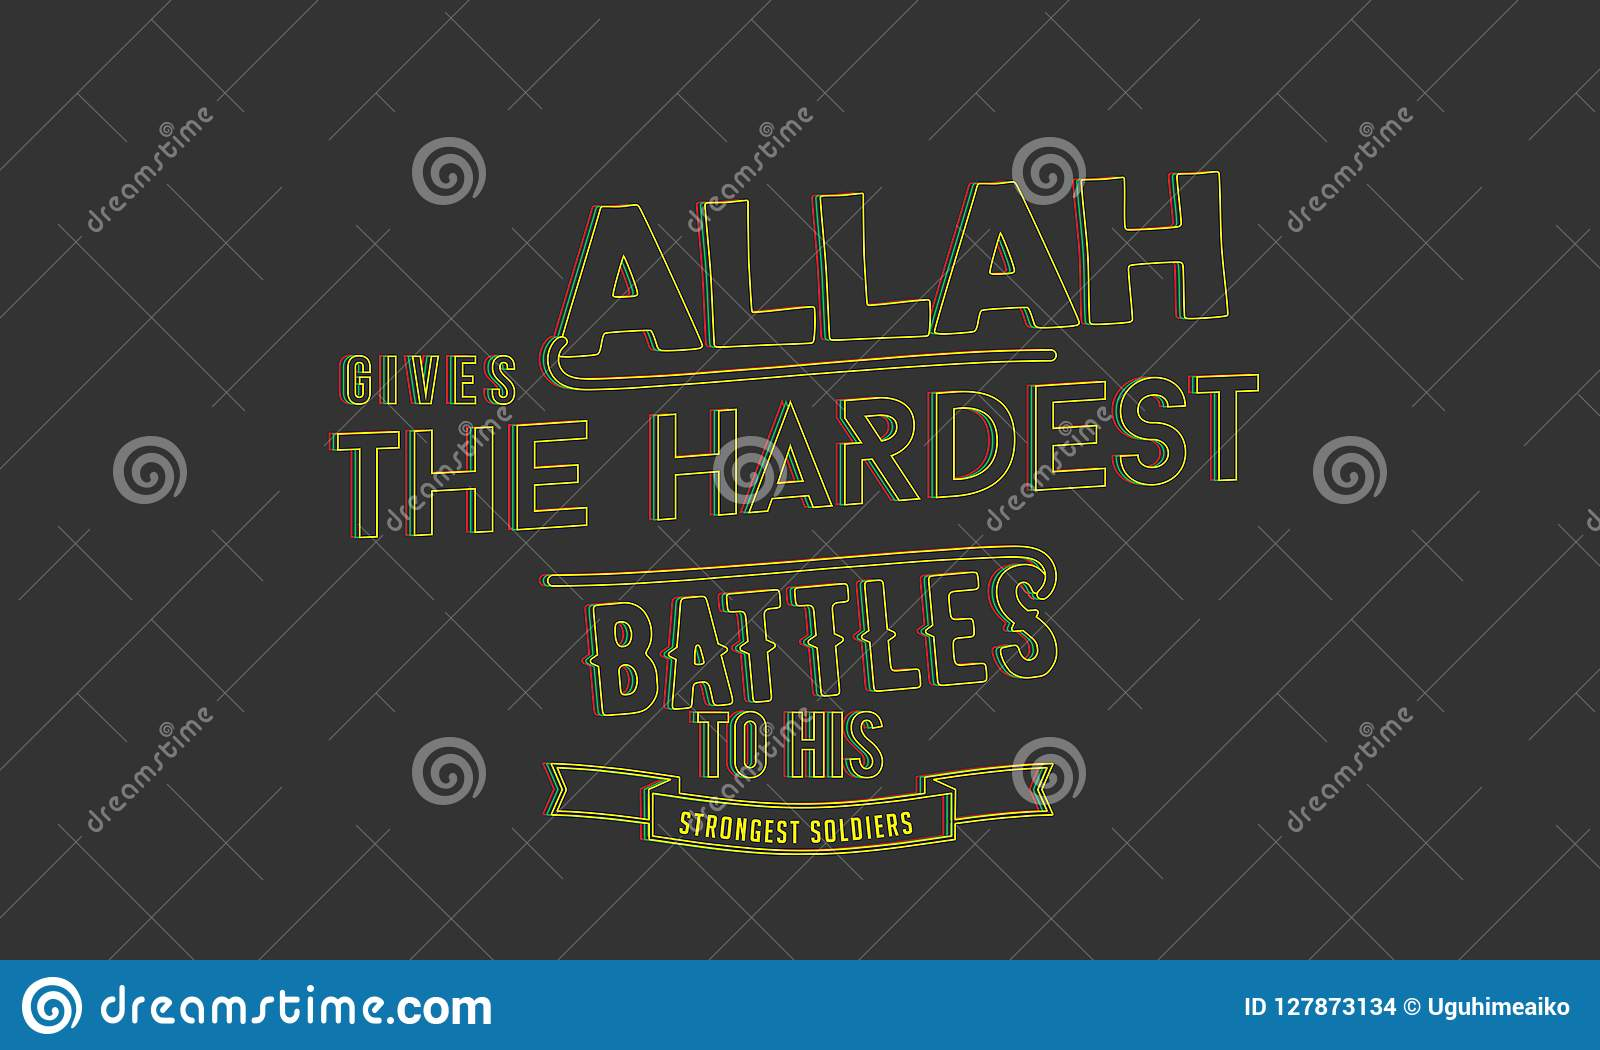 Allah Gives The Hardest Battles To His Strongest Soldiers